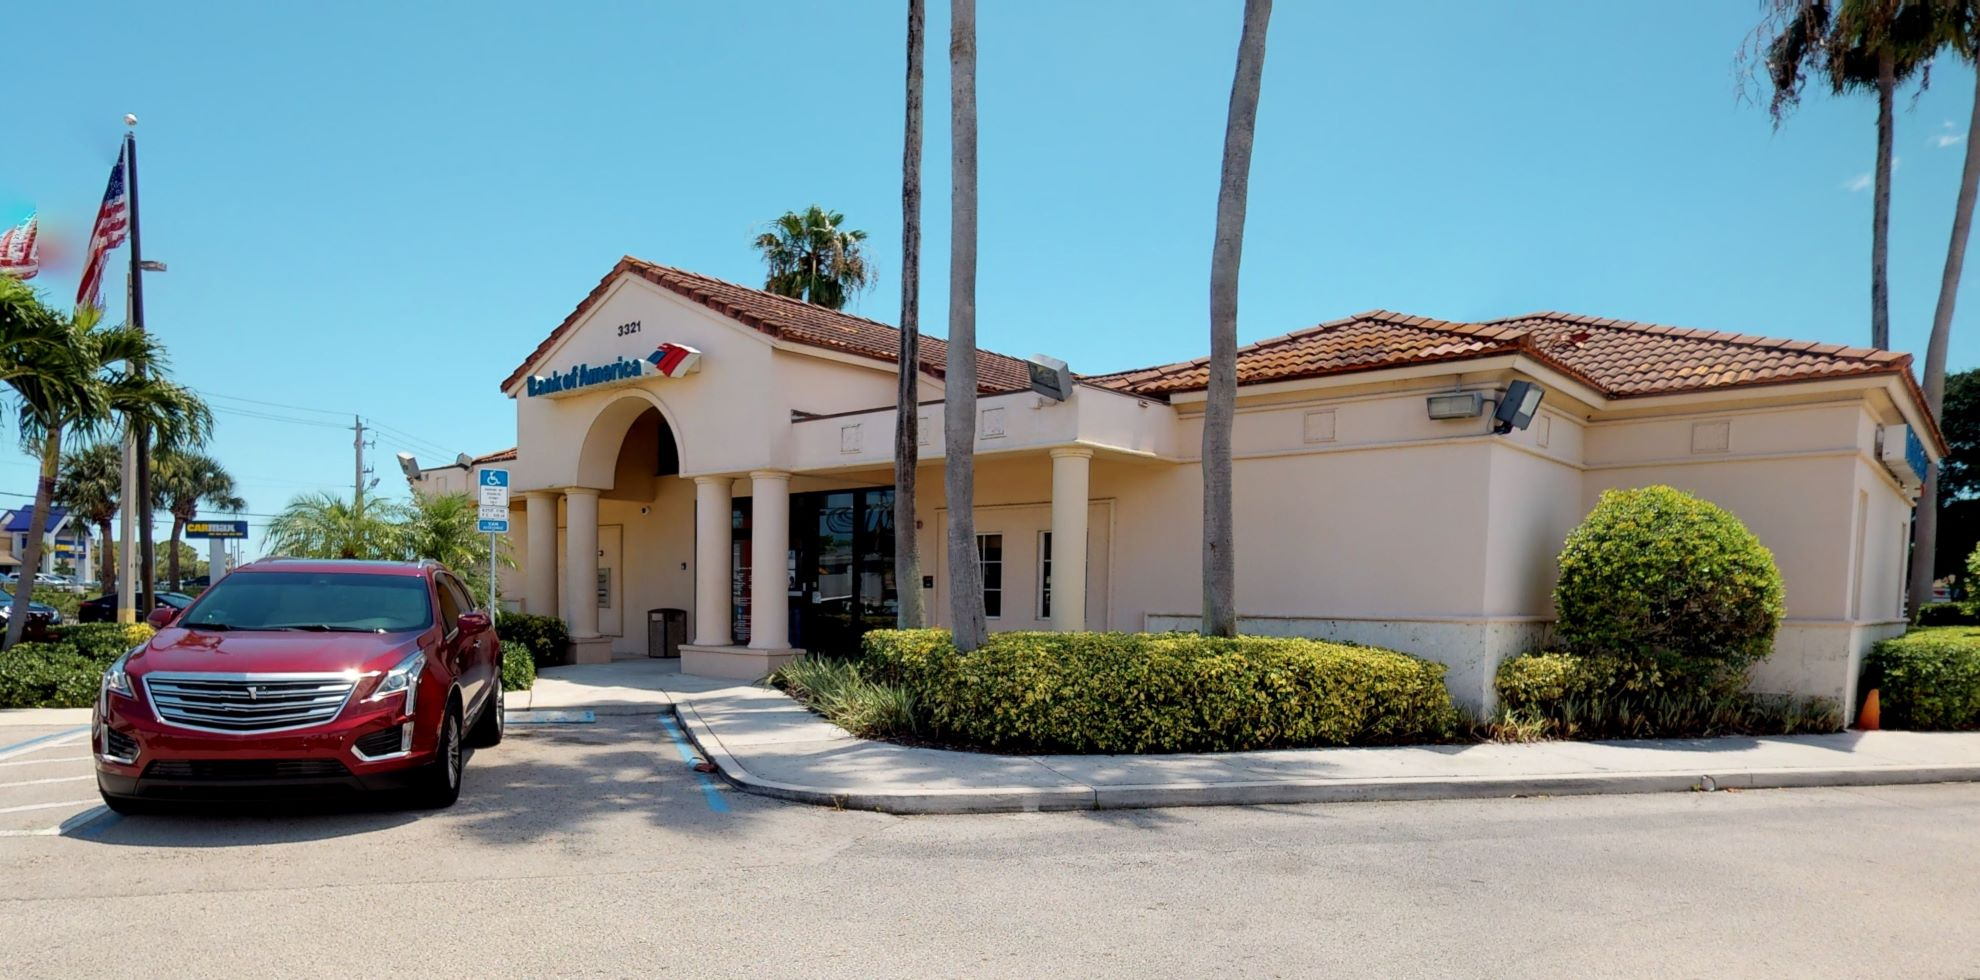 Bank of America financial center with drive-thru ATM | 3321 NW Federal Hwy, Jensen Beach, FL 34957